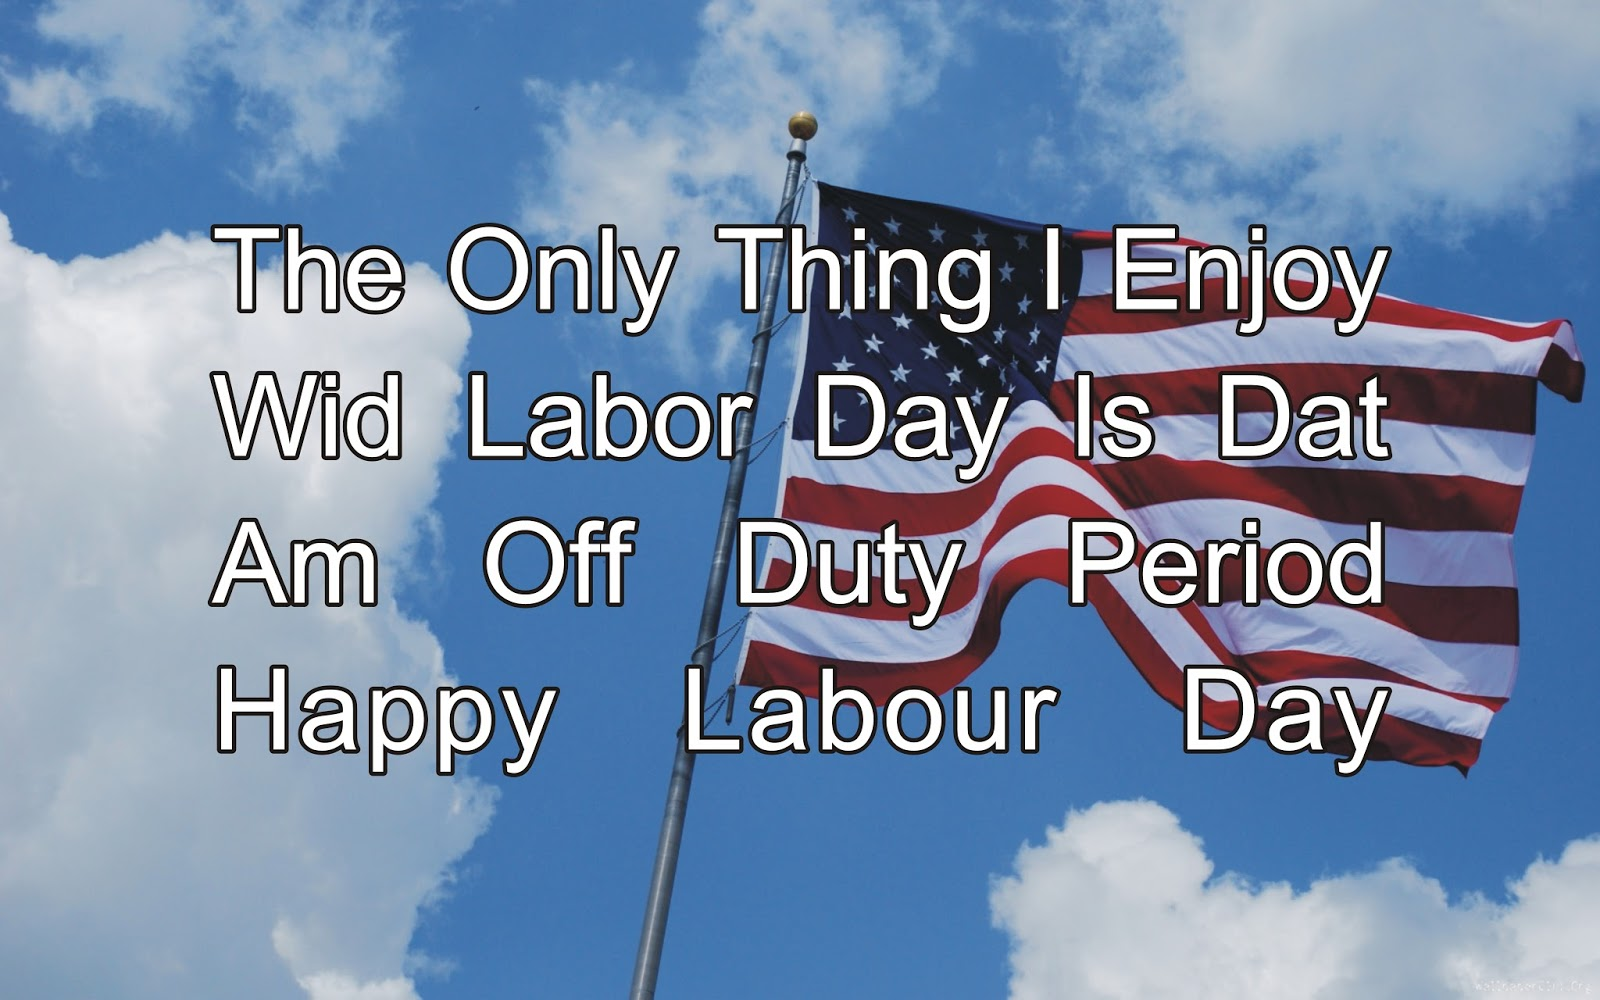 Latest 20 labor day 2017 greetings cards photos and images labor day 2017 cards kristyandbryce Image collections